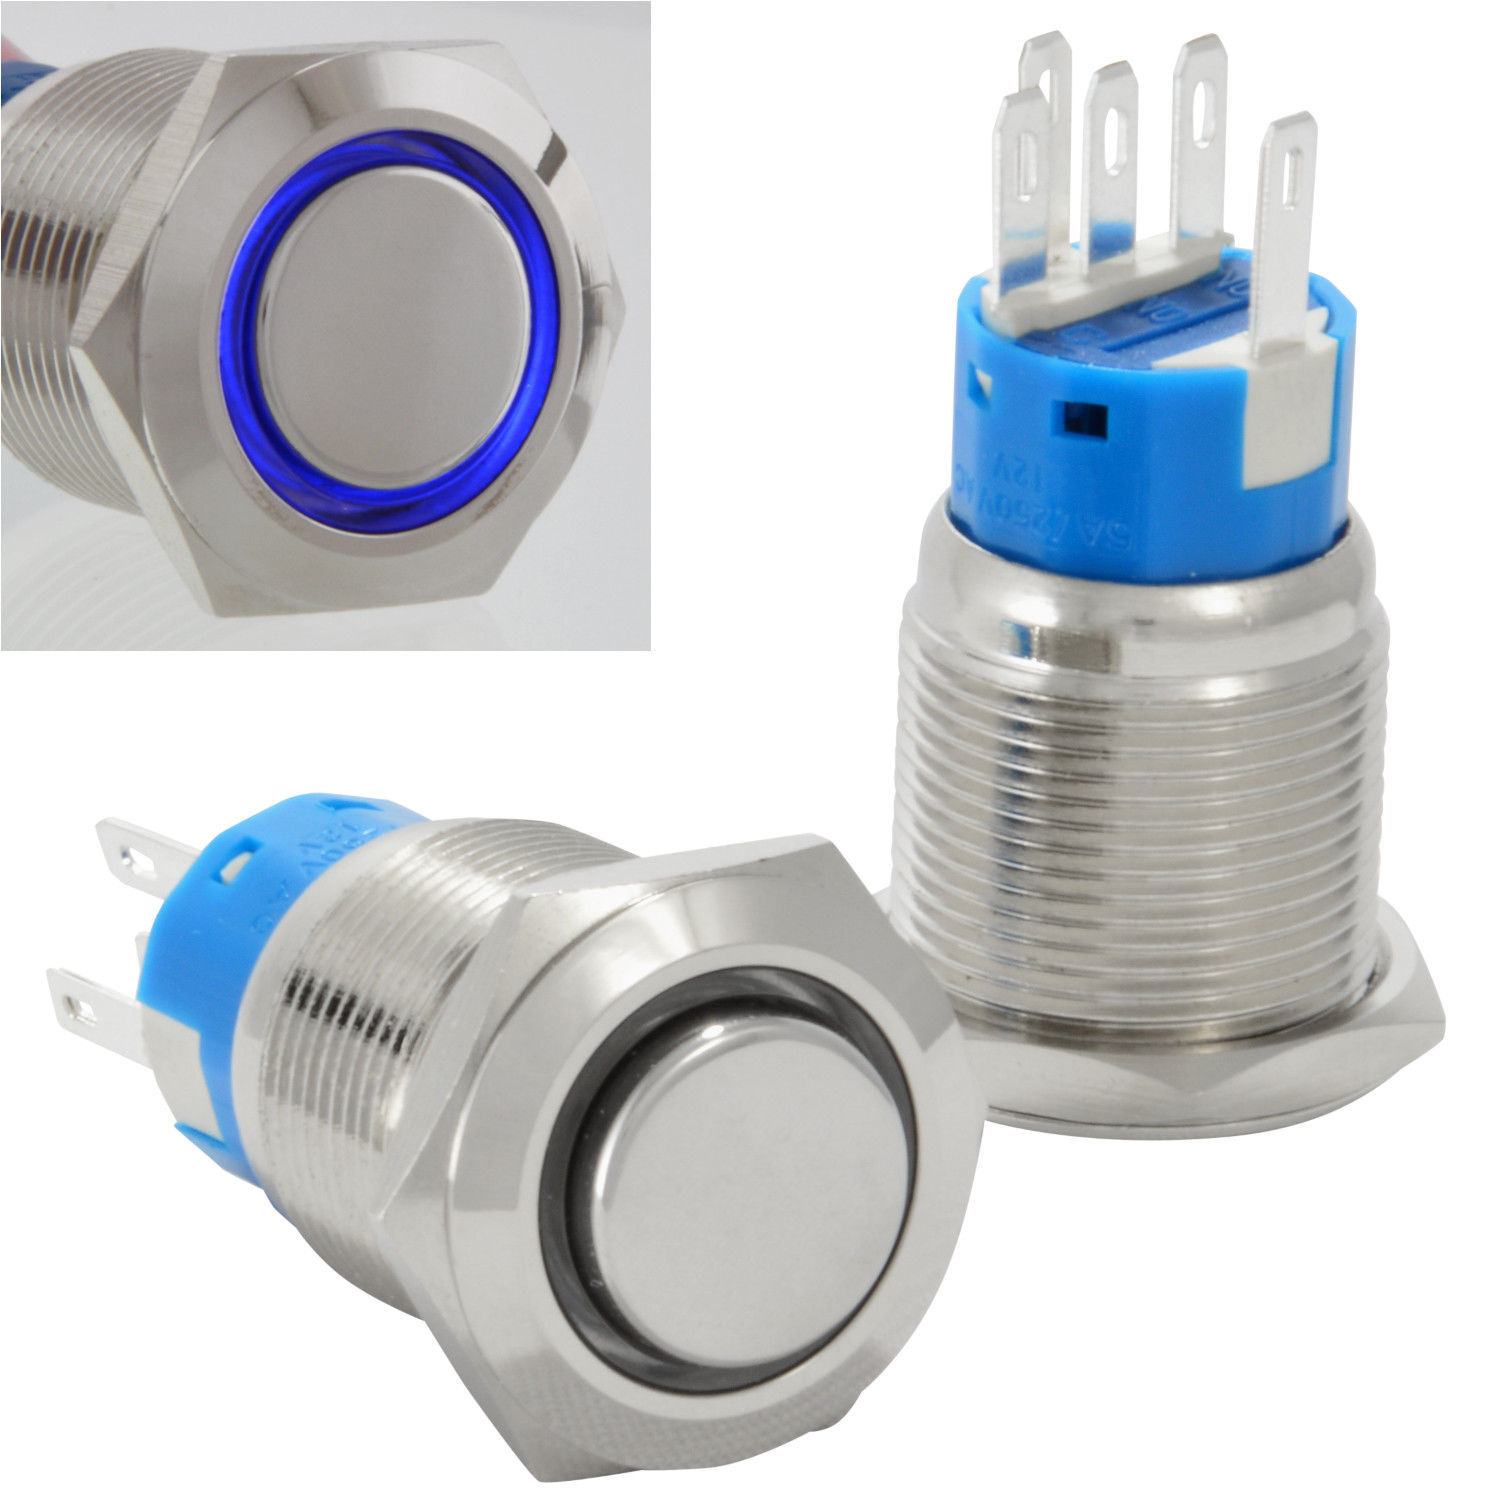 19mm Latching Push Button Power Switch And 42 Similar Items Pushbuttons Momentary On Off In Blue White Stainless Steel W Led Waterproof